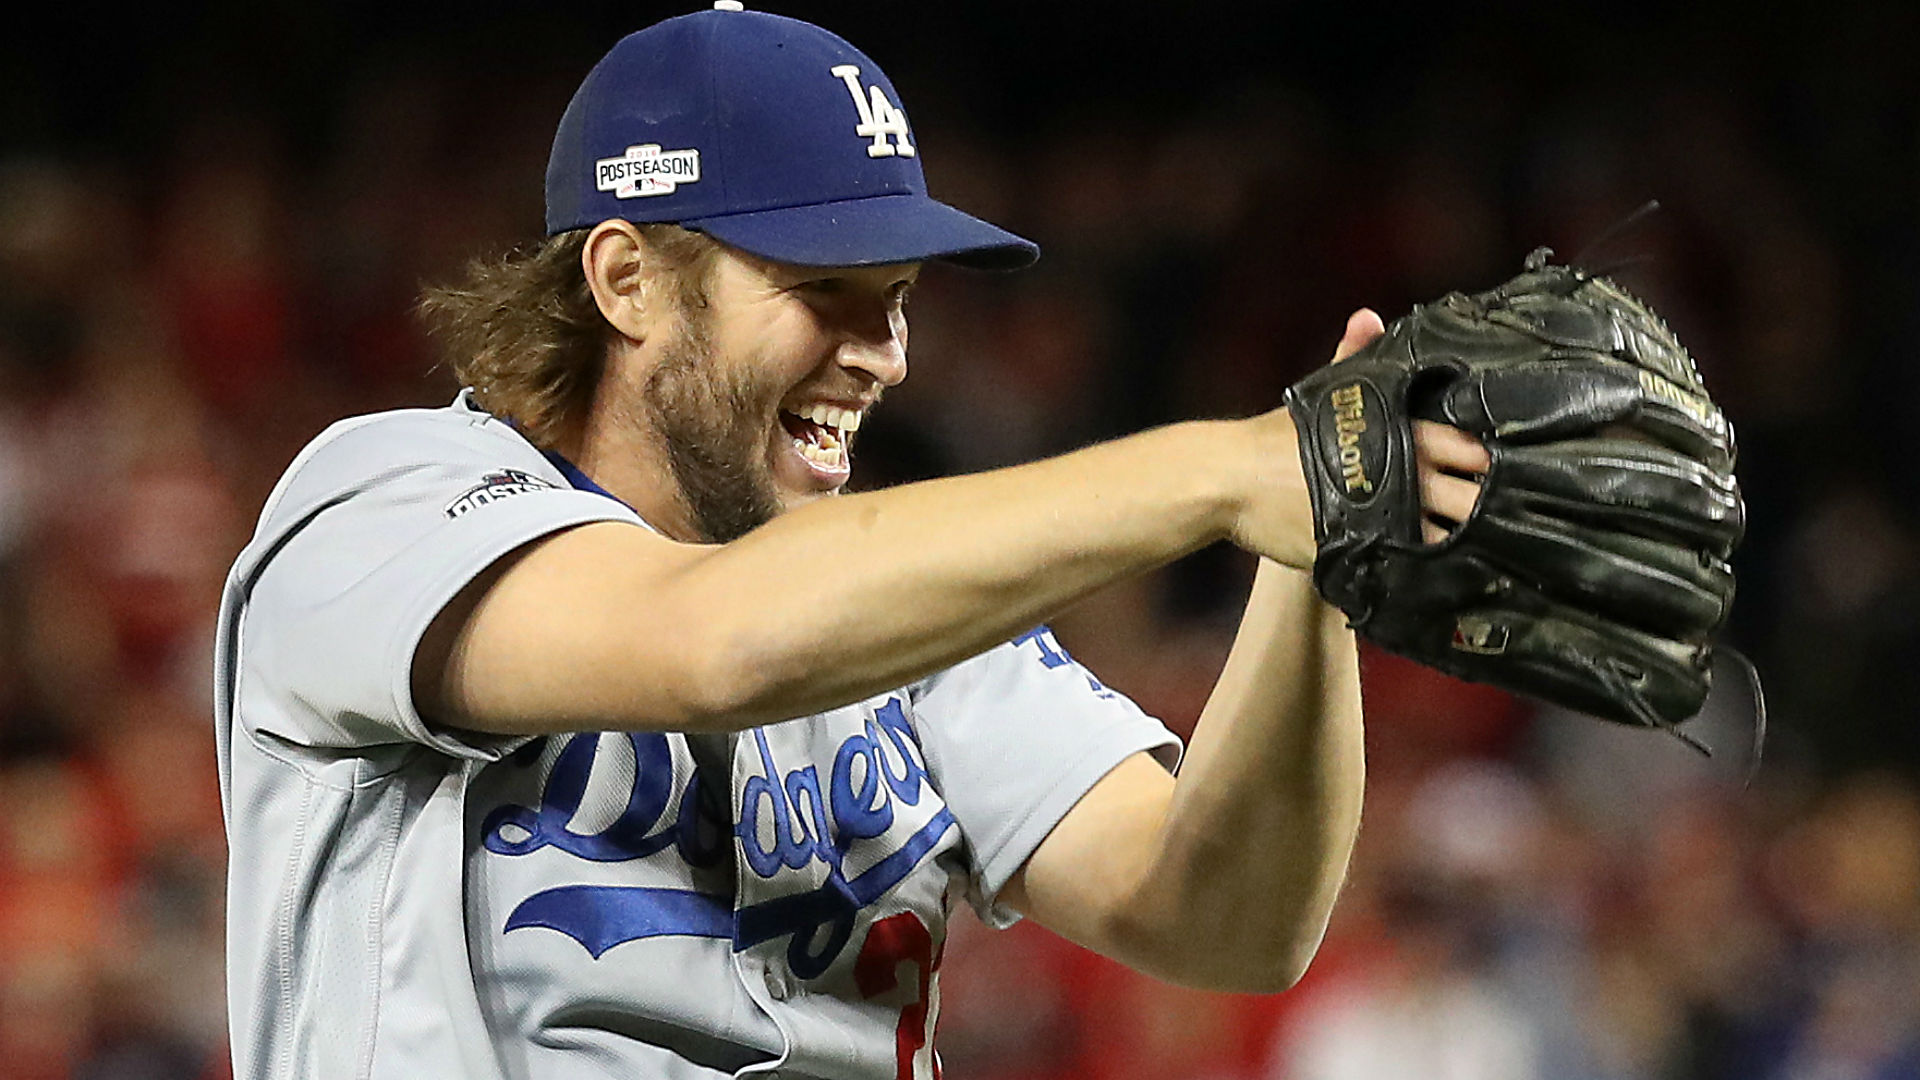 Image result for 2016 nlds kershaw game 5